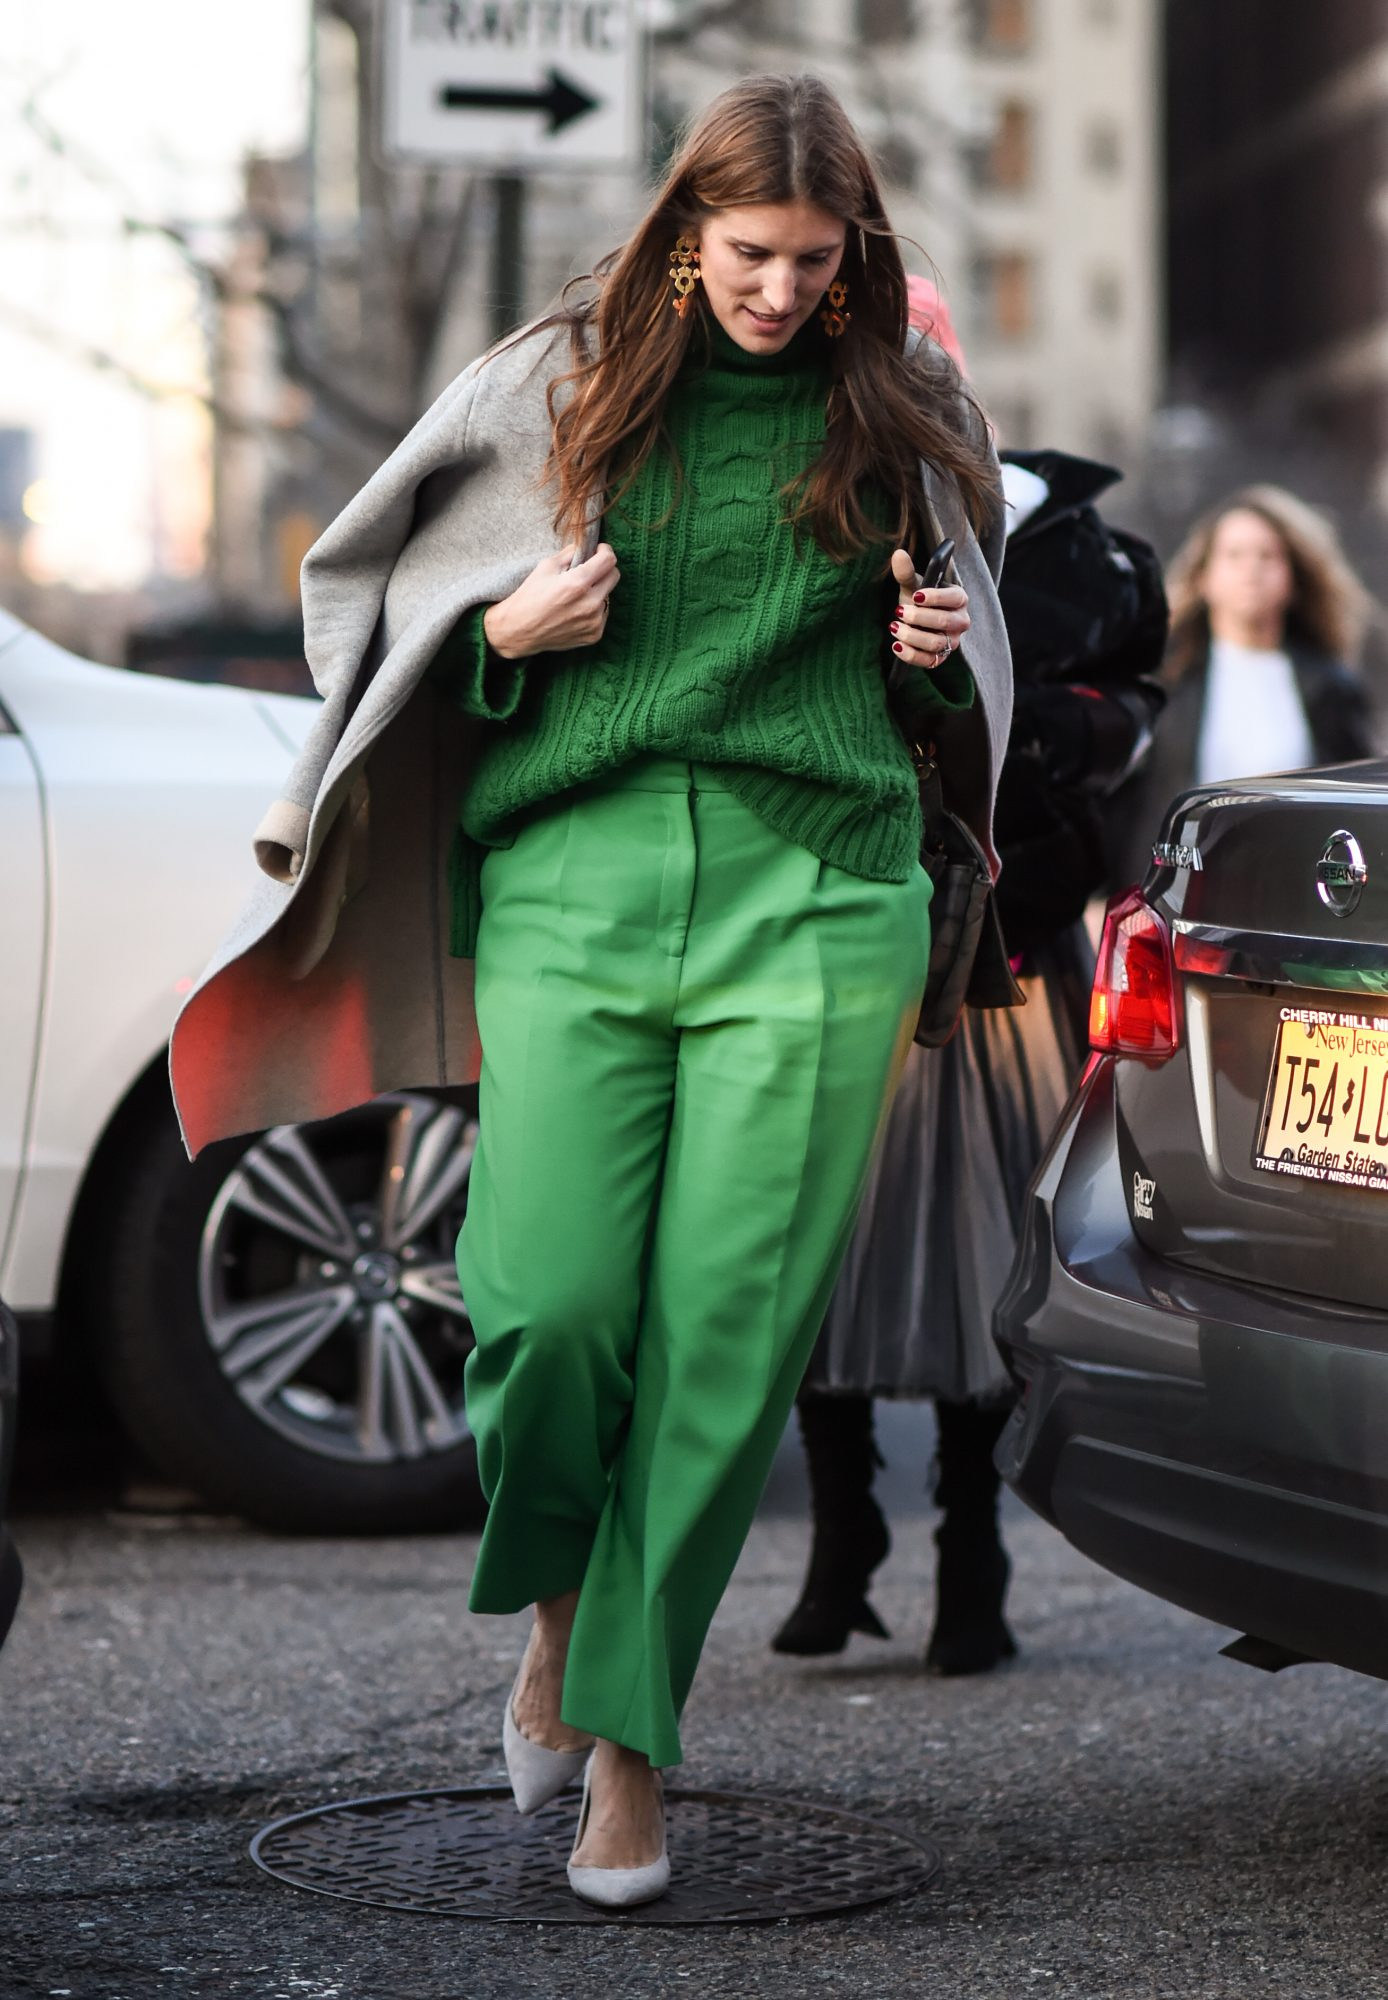 St. Patrick's Day Outfit Ideas, Green Monochromatic Outfit